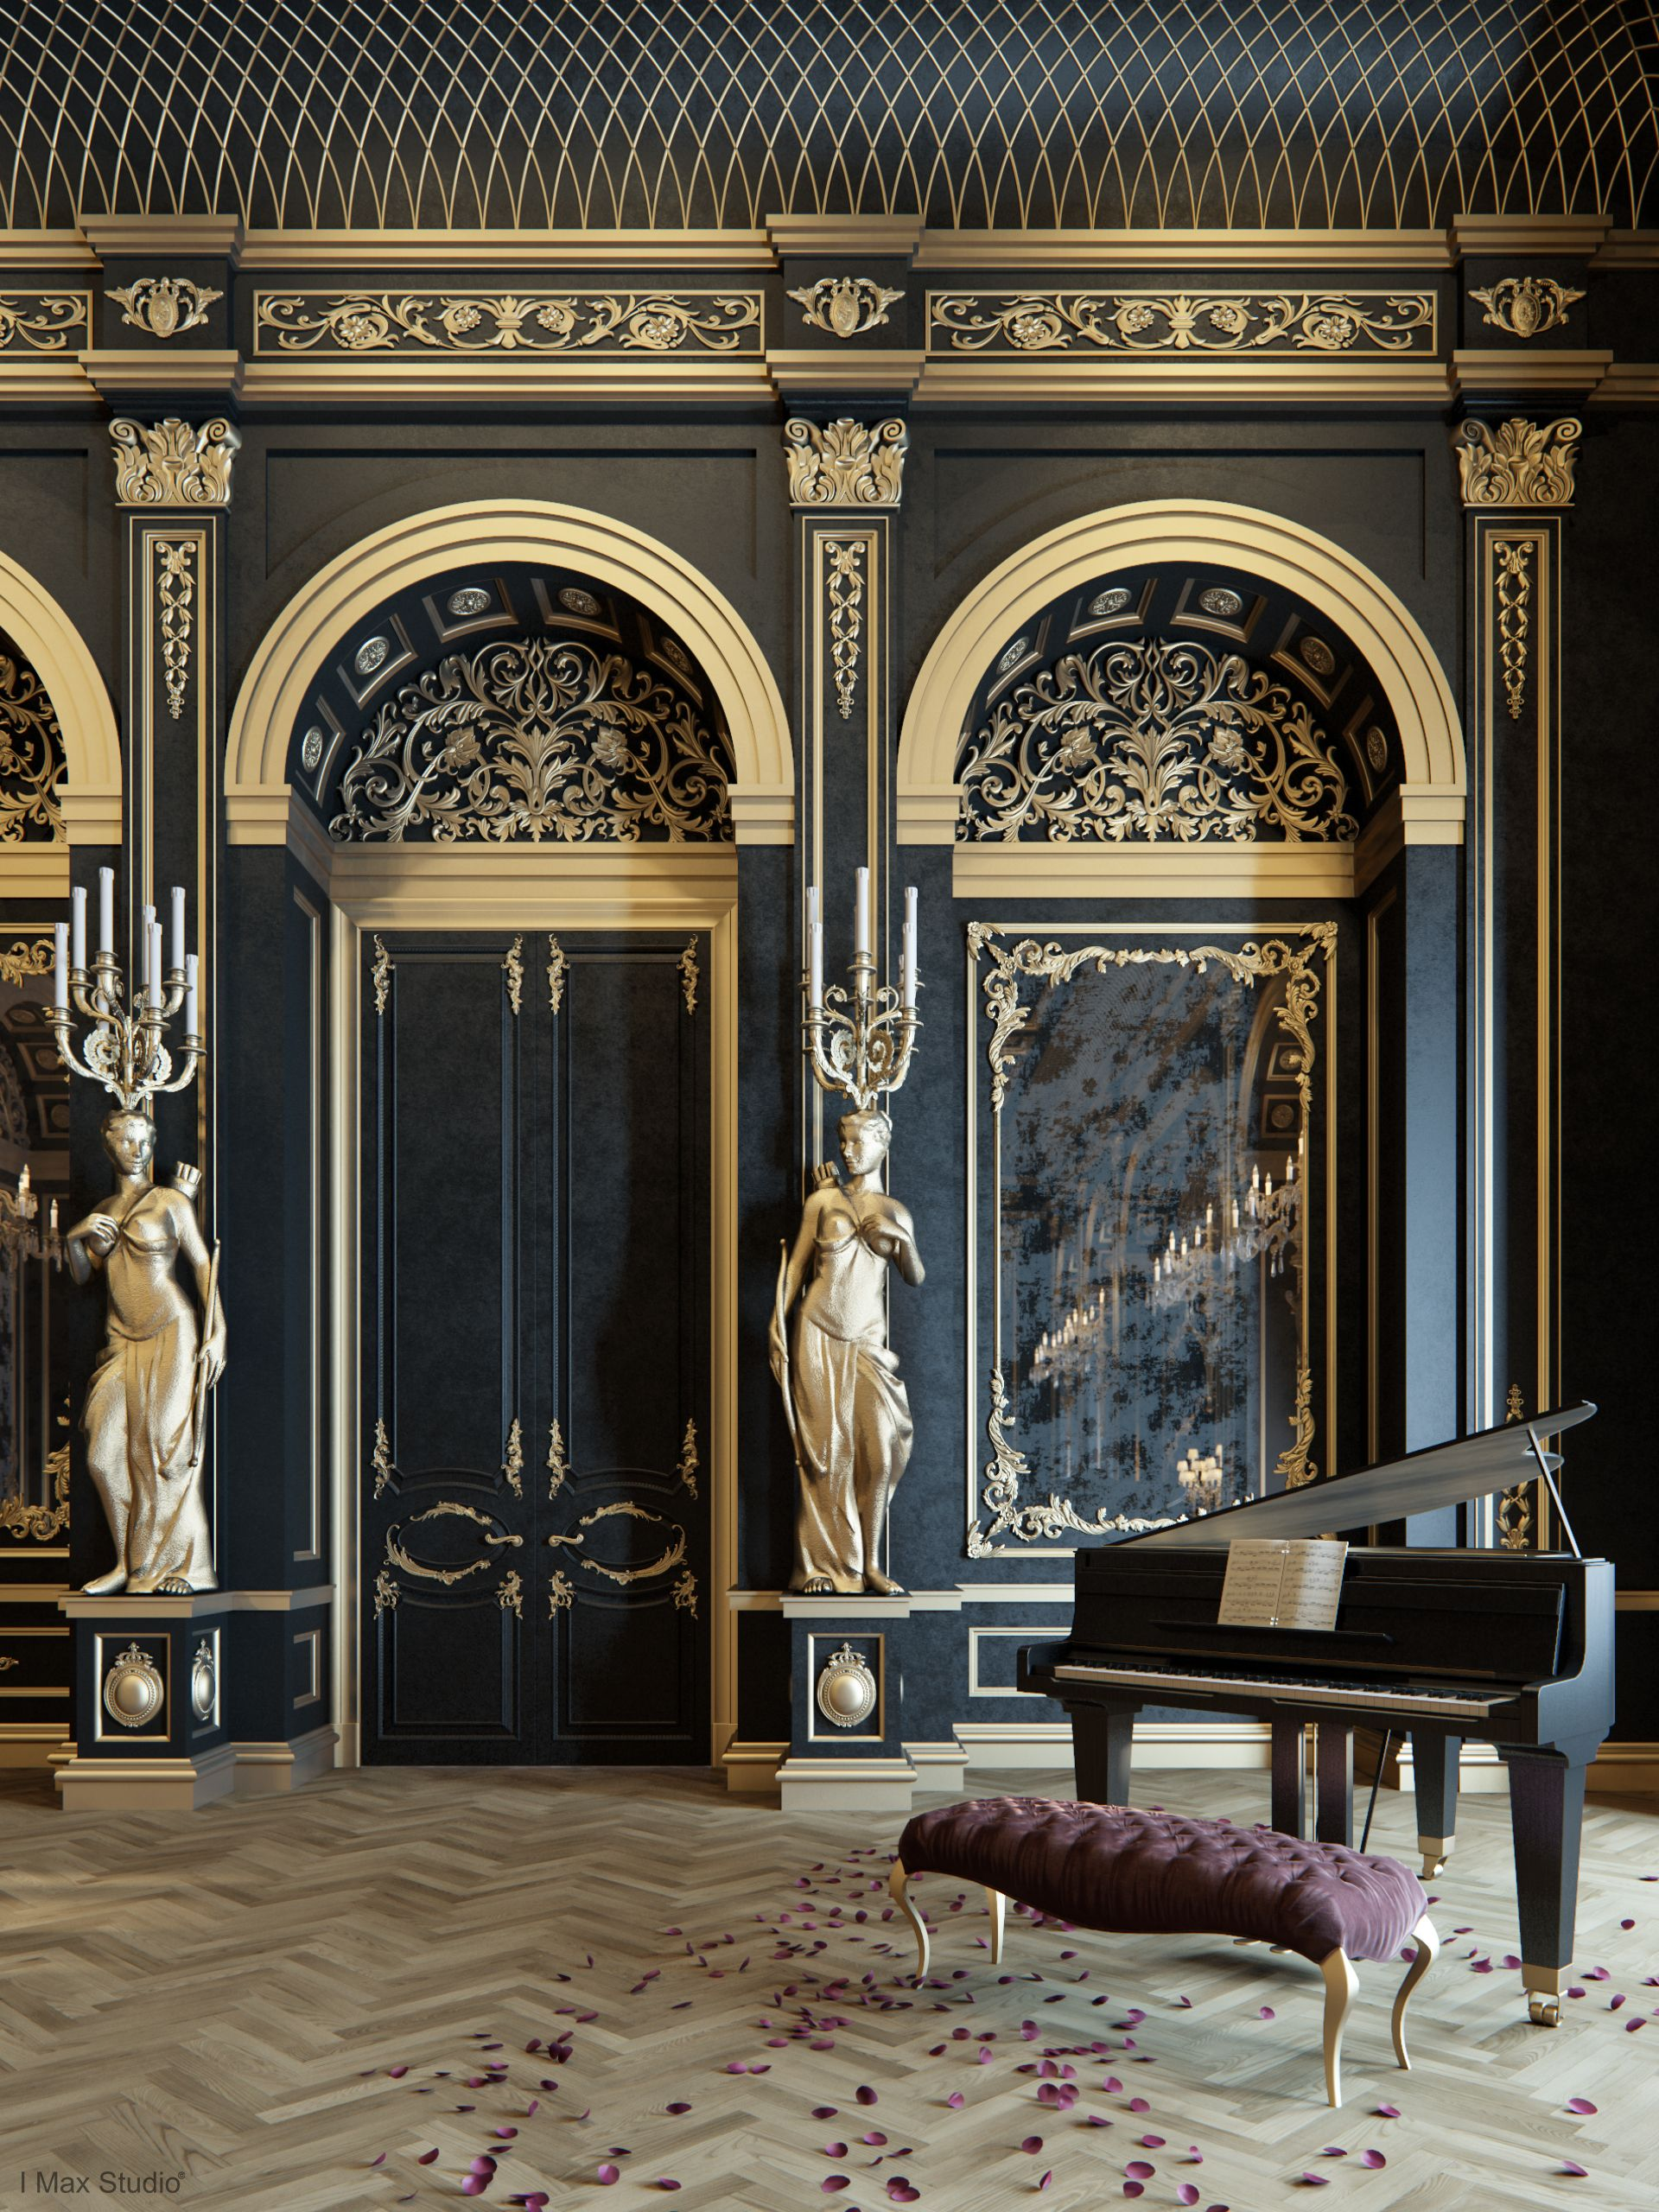 Interior Decorating Items Blackum Mixing Between Gold And Black Color In Luxury